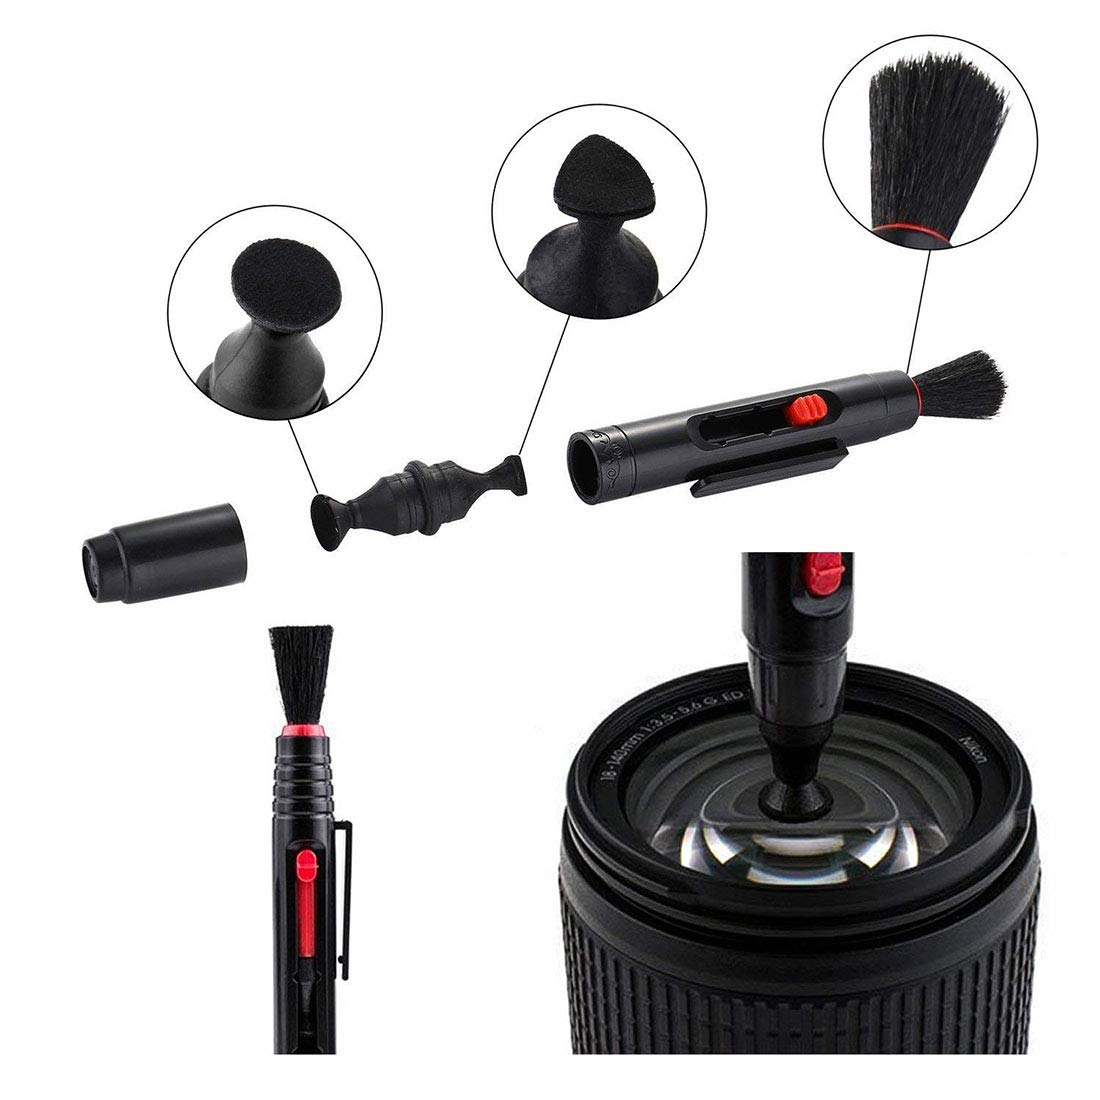 Enerhu Camera Cleaning Kit for Cameras Sensor Cleaning//Lens Cleaning with Carry Bag